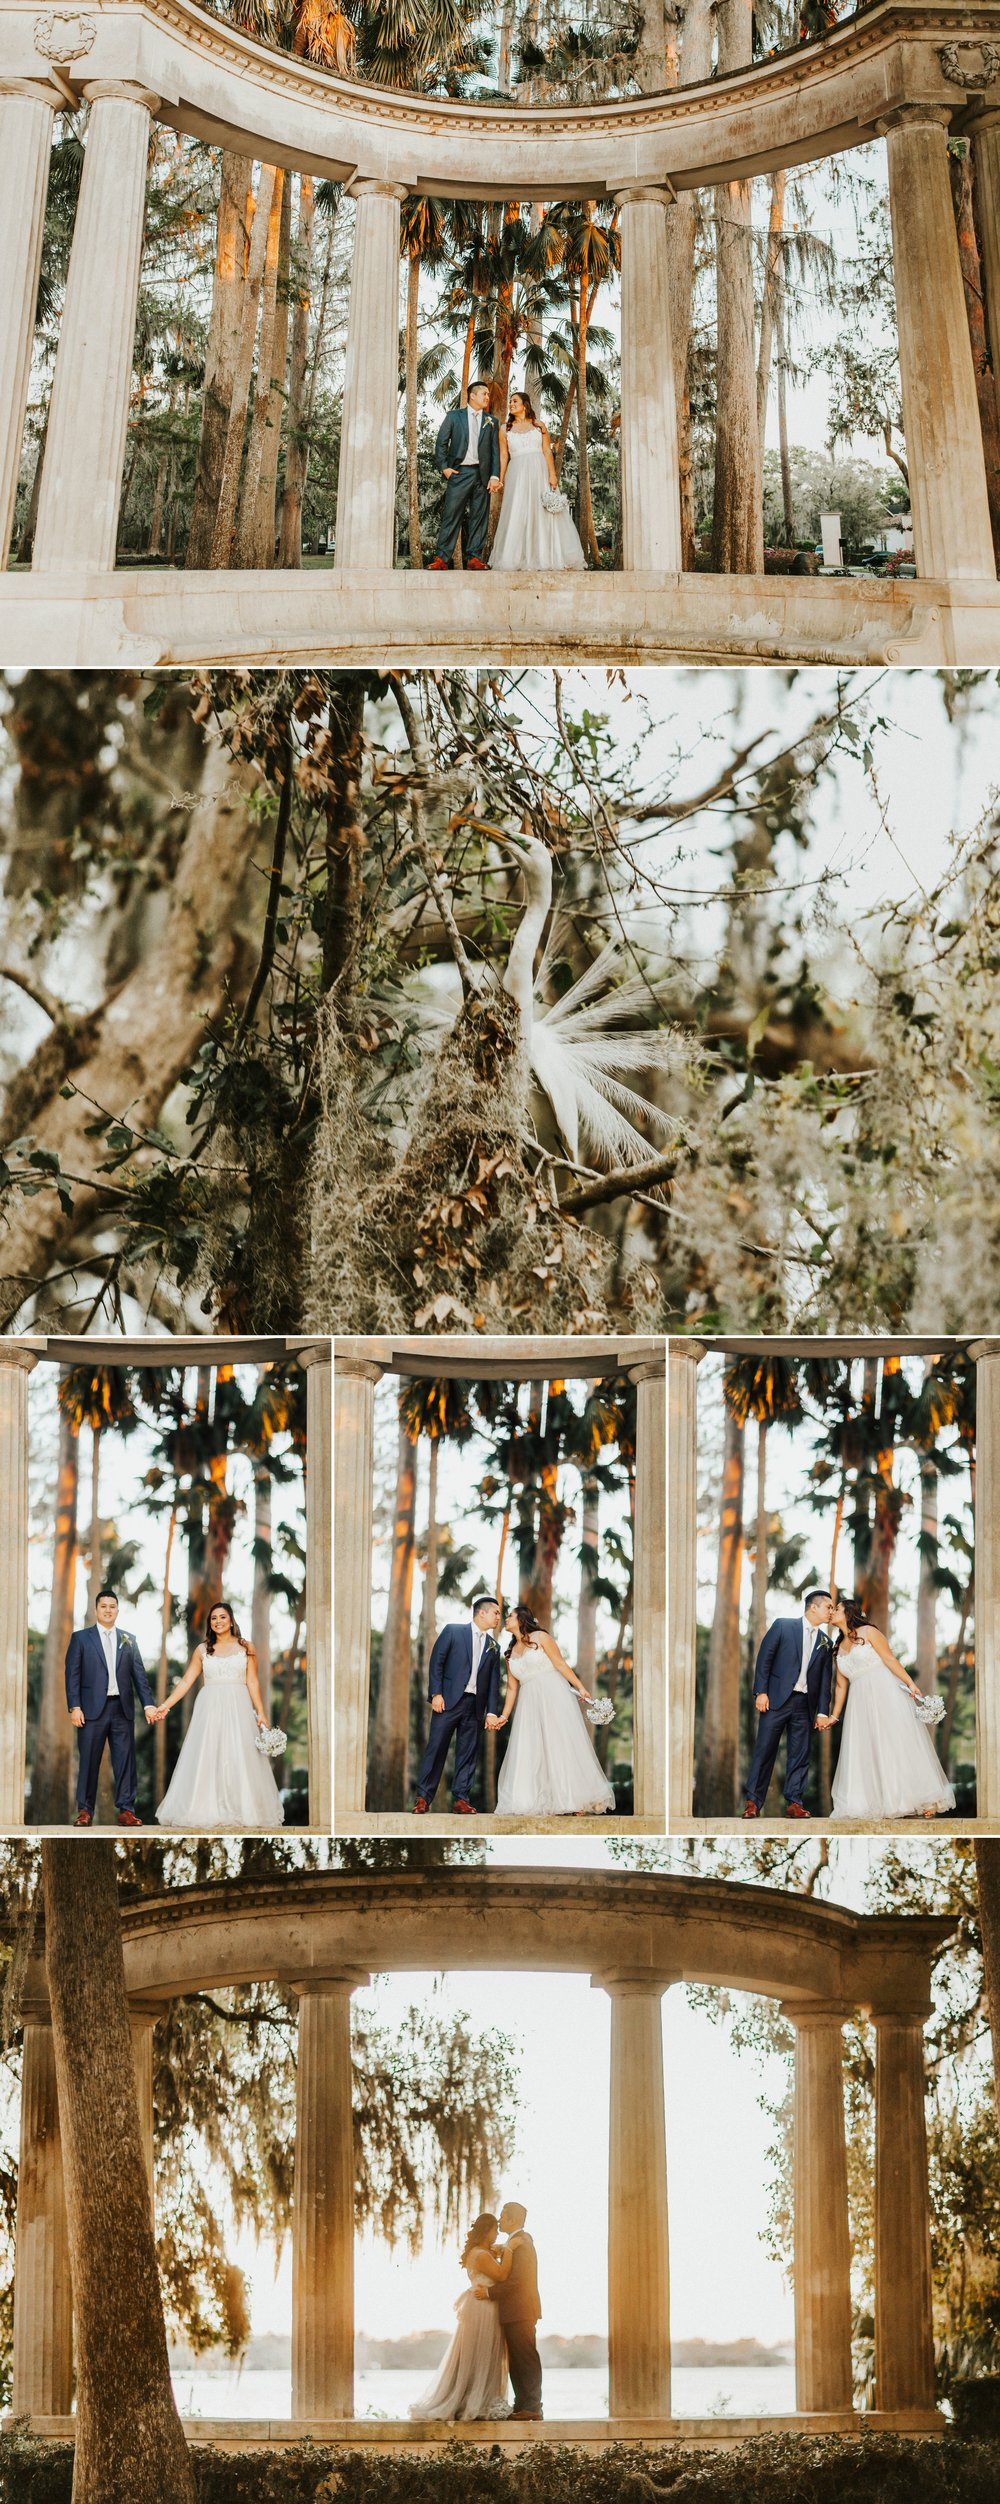 Romantic Leu Gardens Wedding Pictures - Winter Park Wedding Photographer Shaina DeCiryan- Effie+Phillip16.jpg